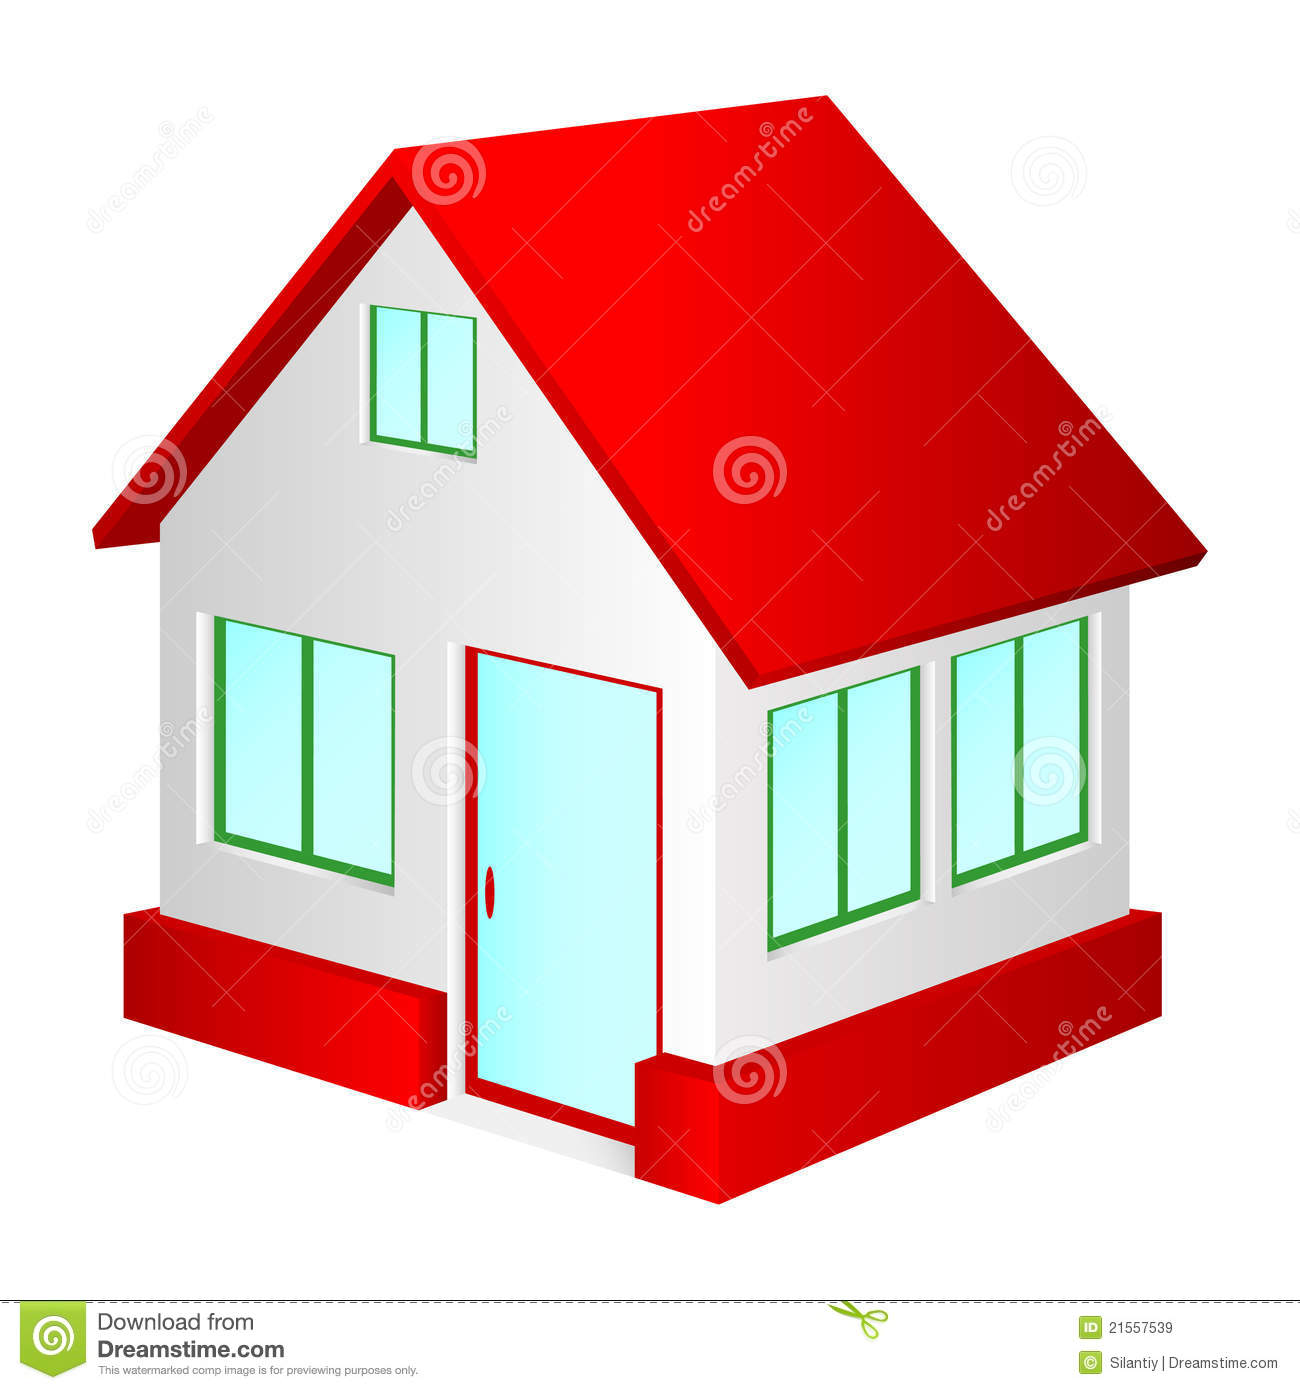 Rotes haus clipart graphic transparent stock Haus Mit Rotem Dach. Lizenzfreie Stockbilder - Bild: 21557539 graphic transparent stock